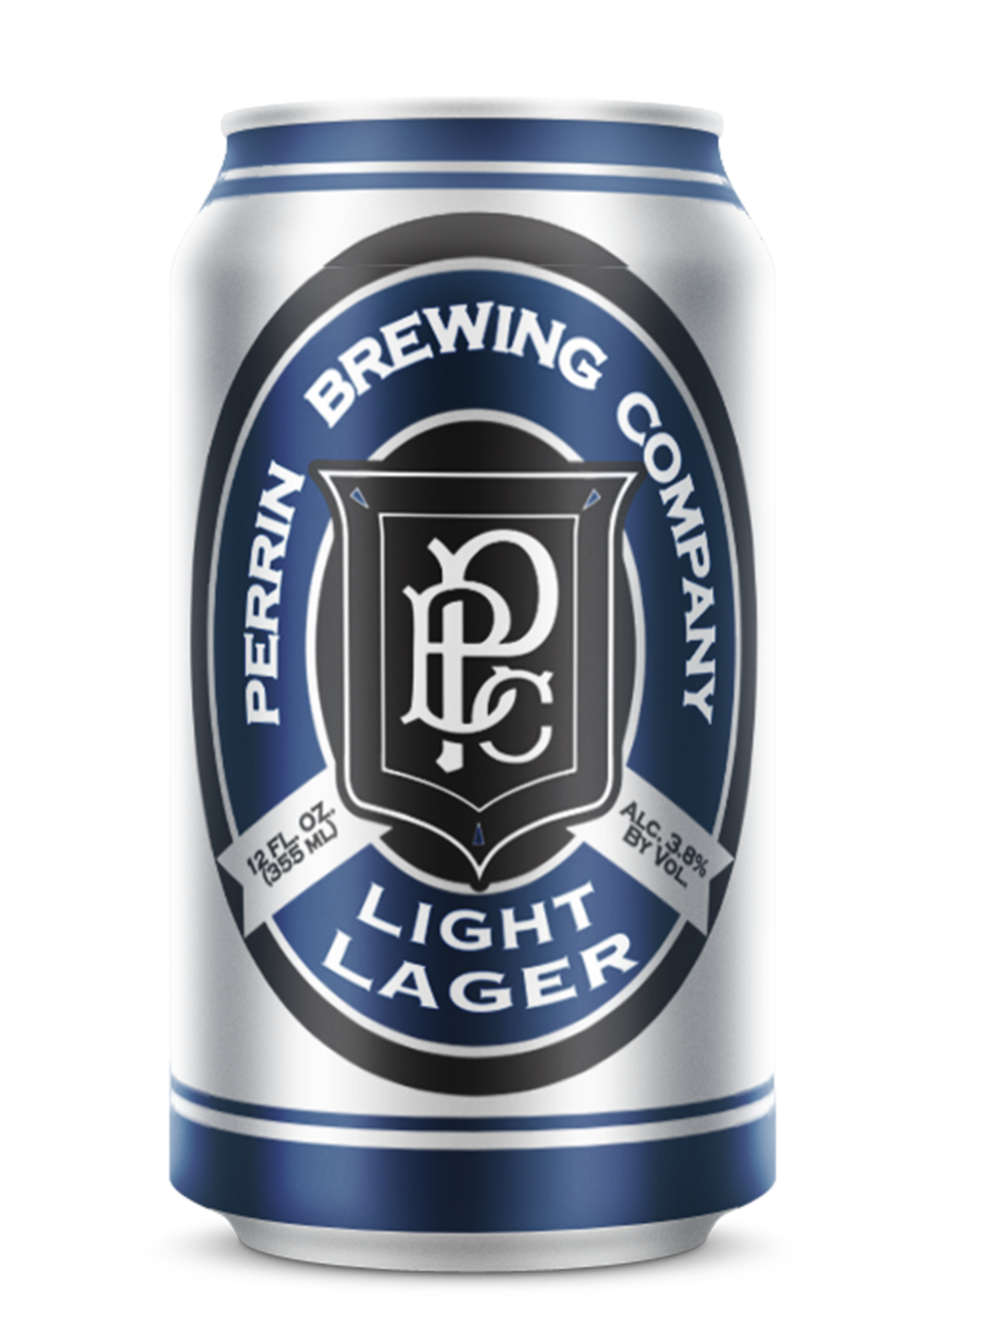 LightLager_website.png